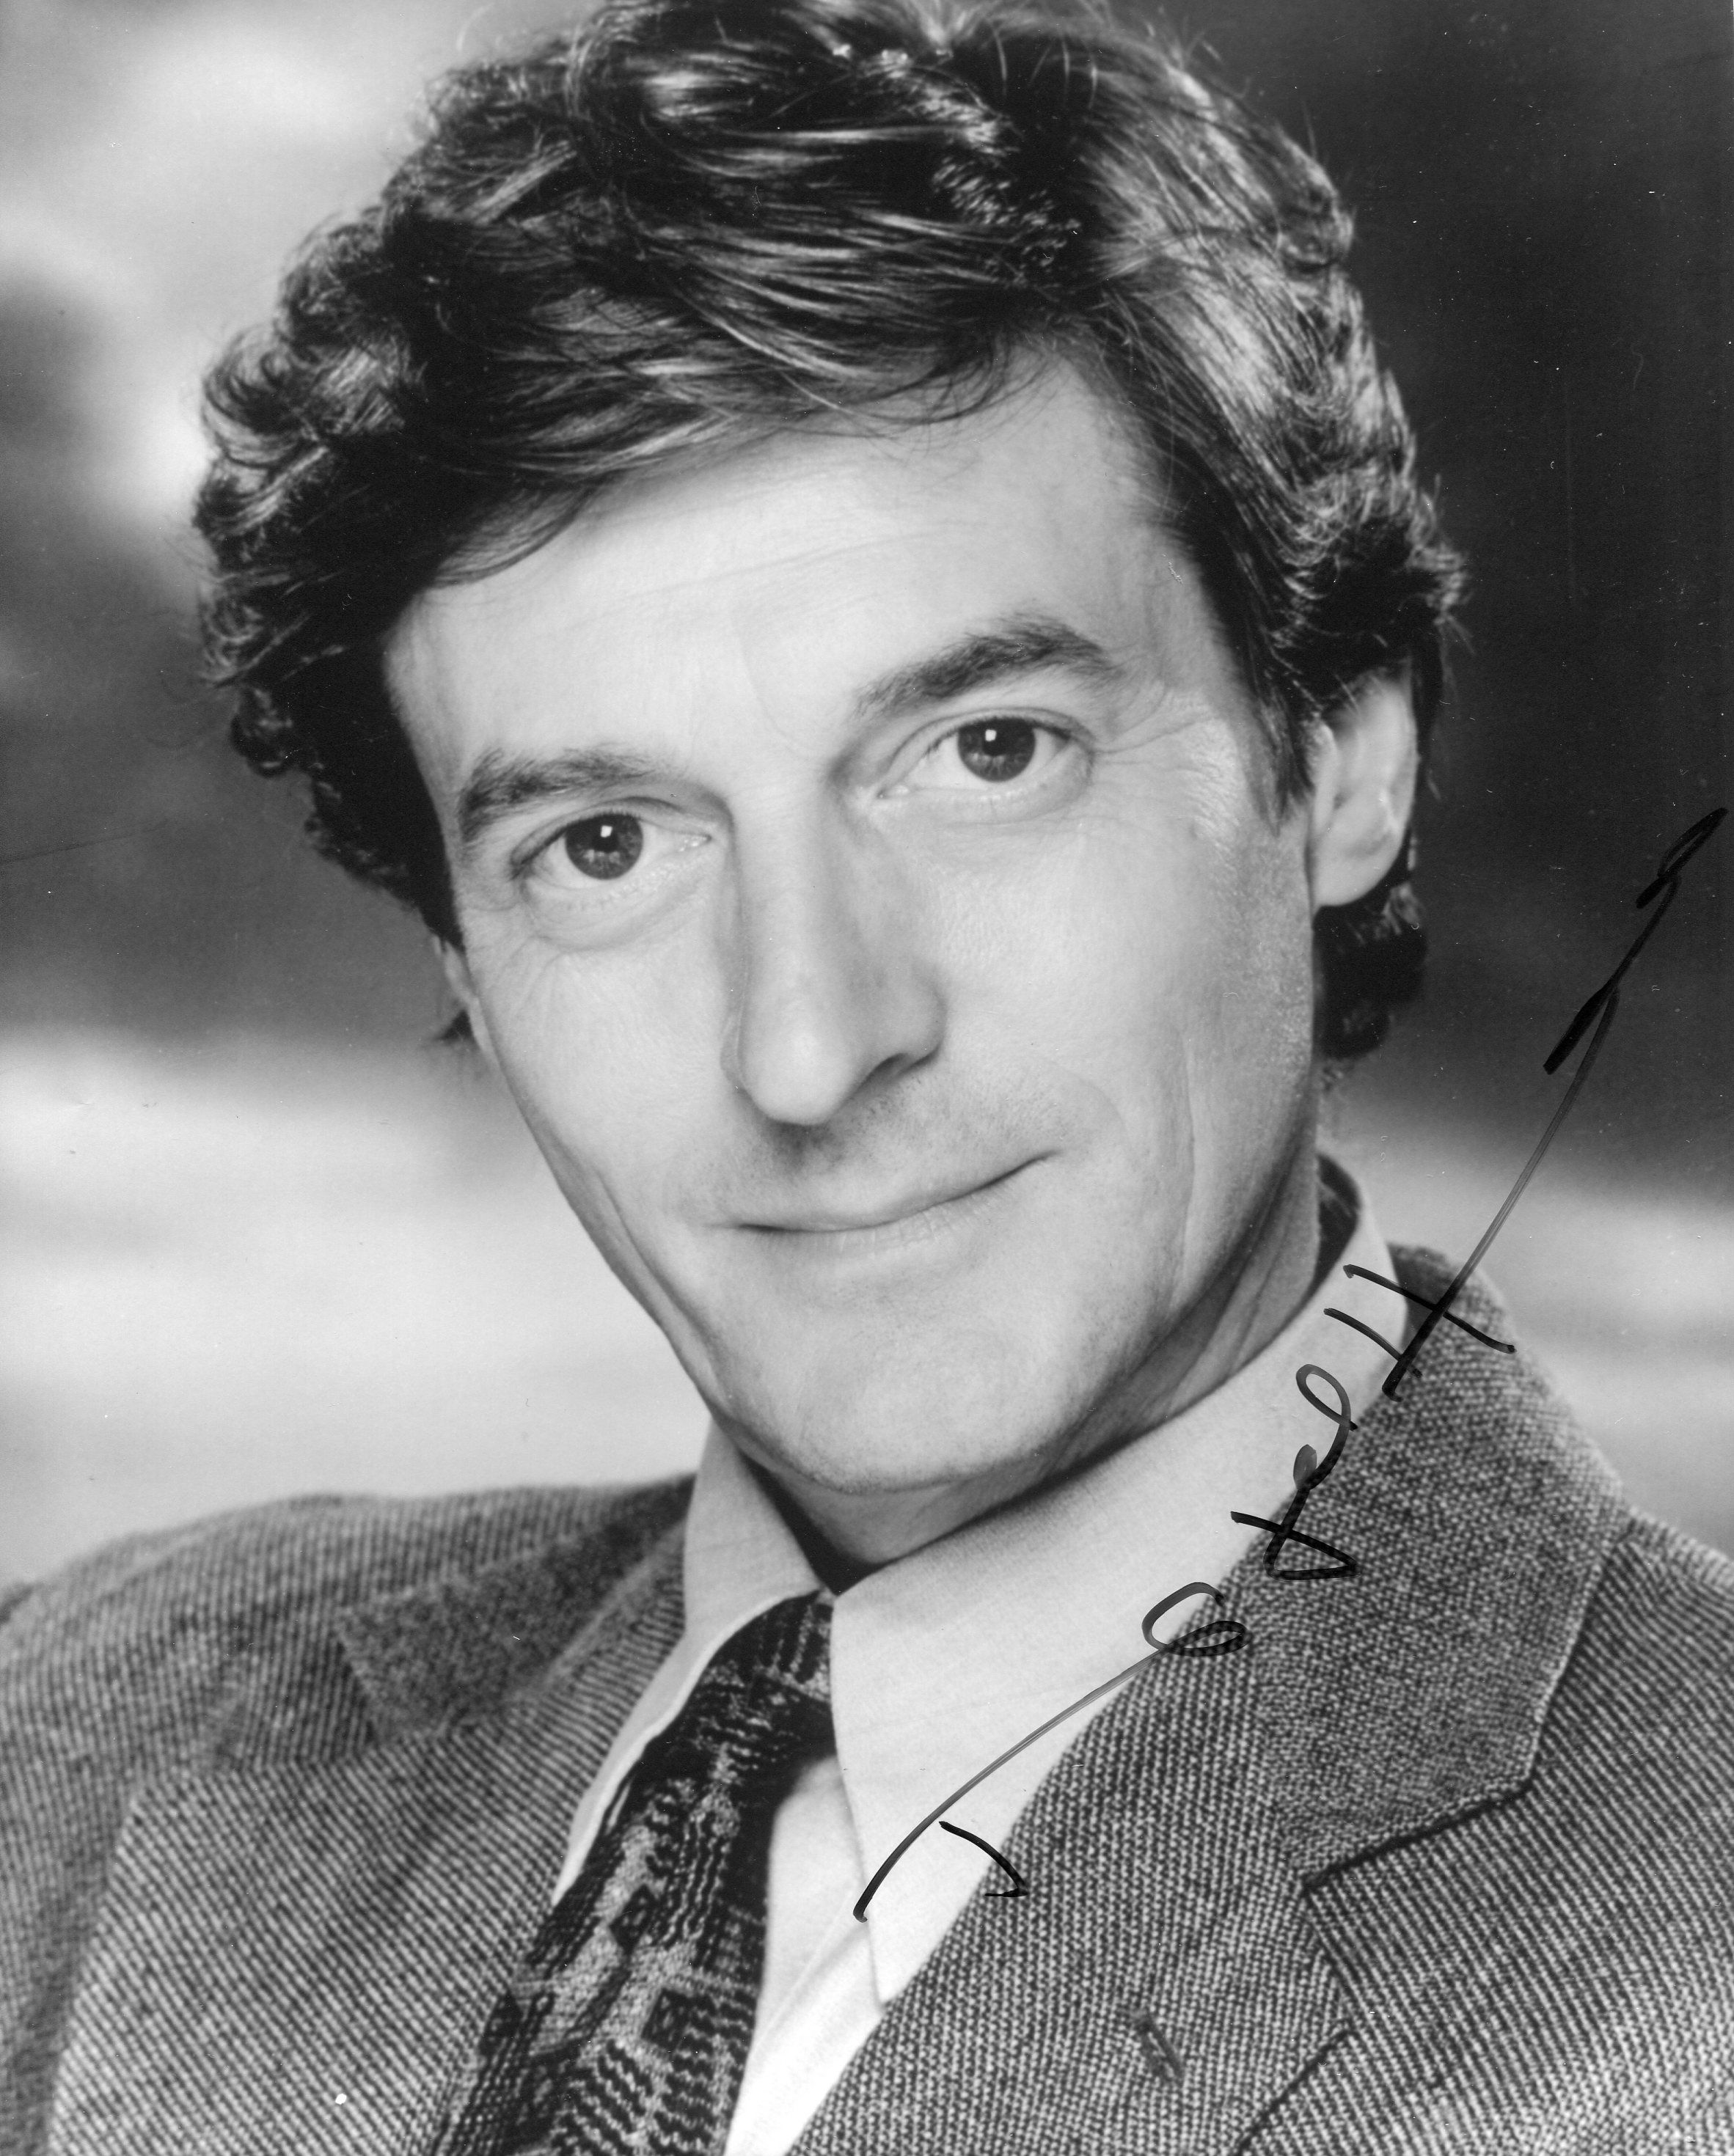 Nigel Havers Headshot British Actors